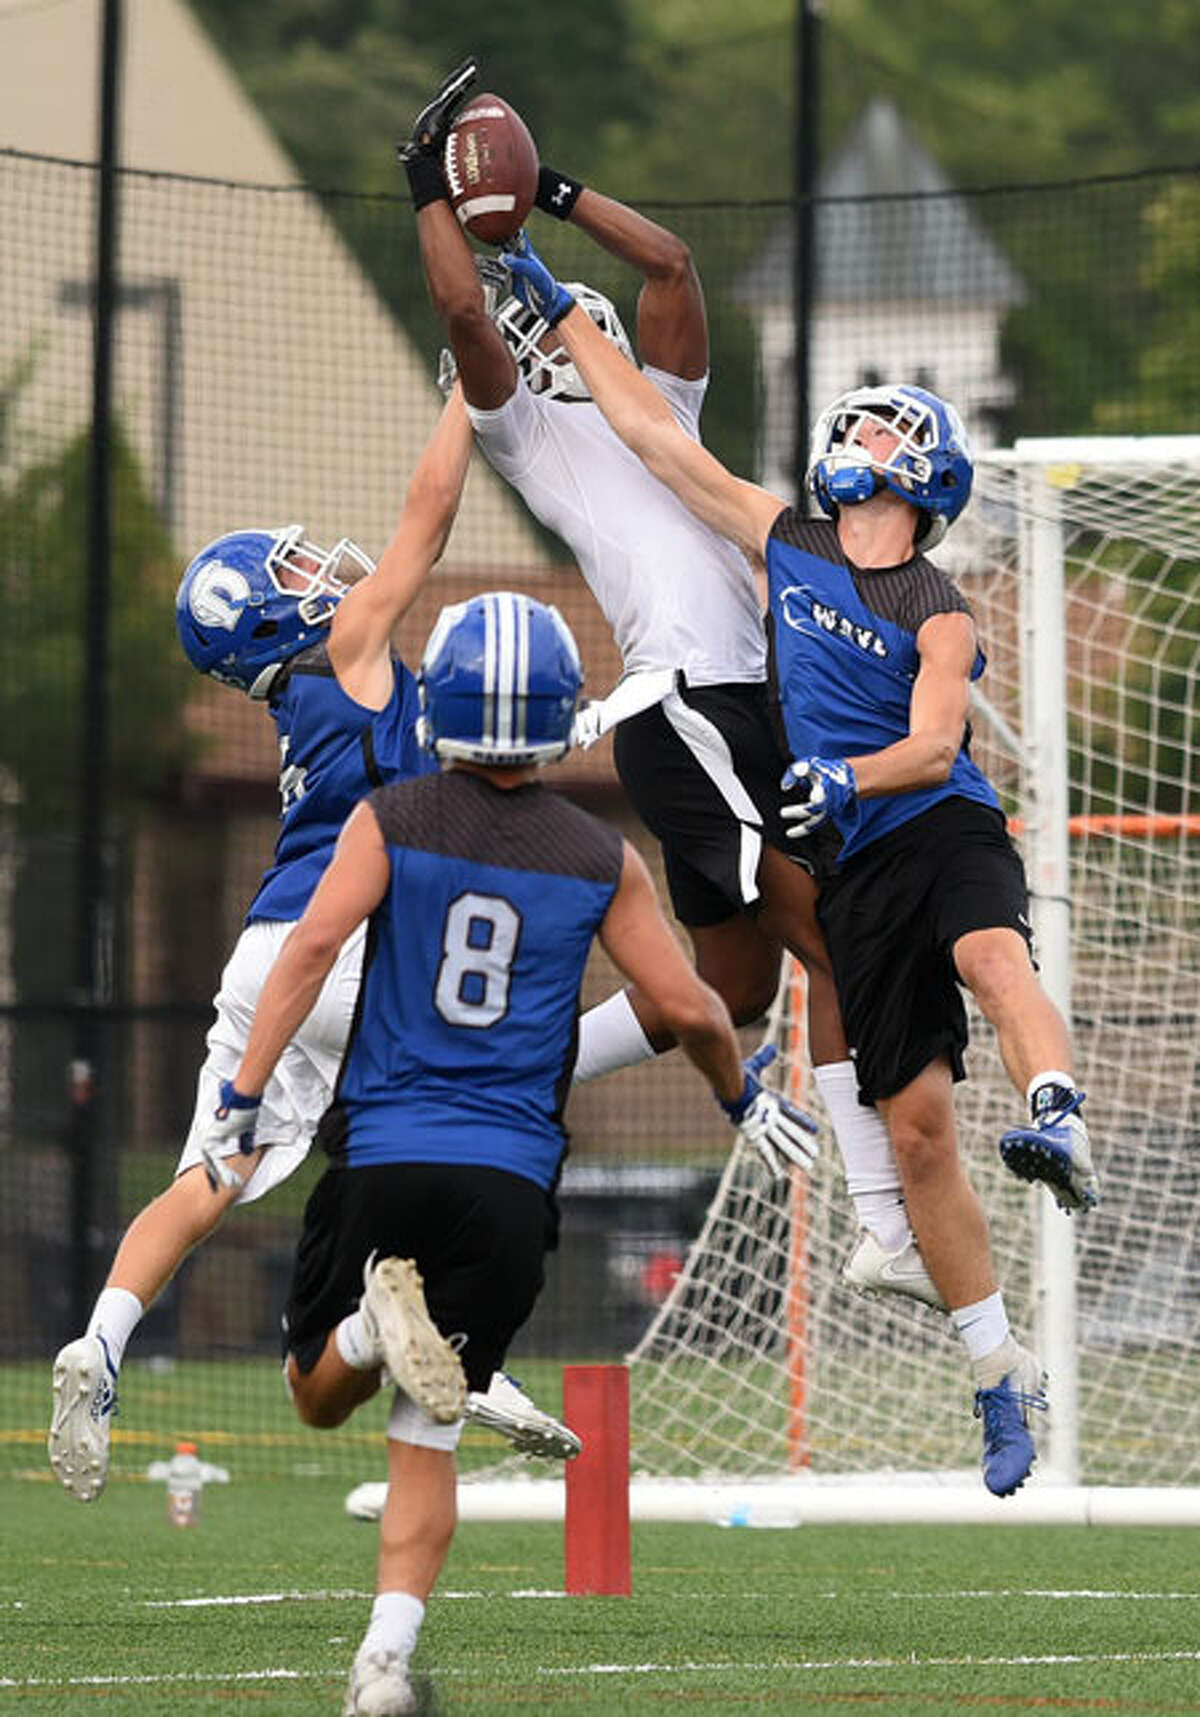 The Darien defense was in fine form as a possible touchdown pass is tipped away from a Brunswick receiver by the Blue Wave's Tyler Herget during the annual Grip It and Rip It 7-on-7 passing tournament in New Canaan last weekend. - Dave Stewart photo